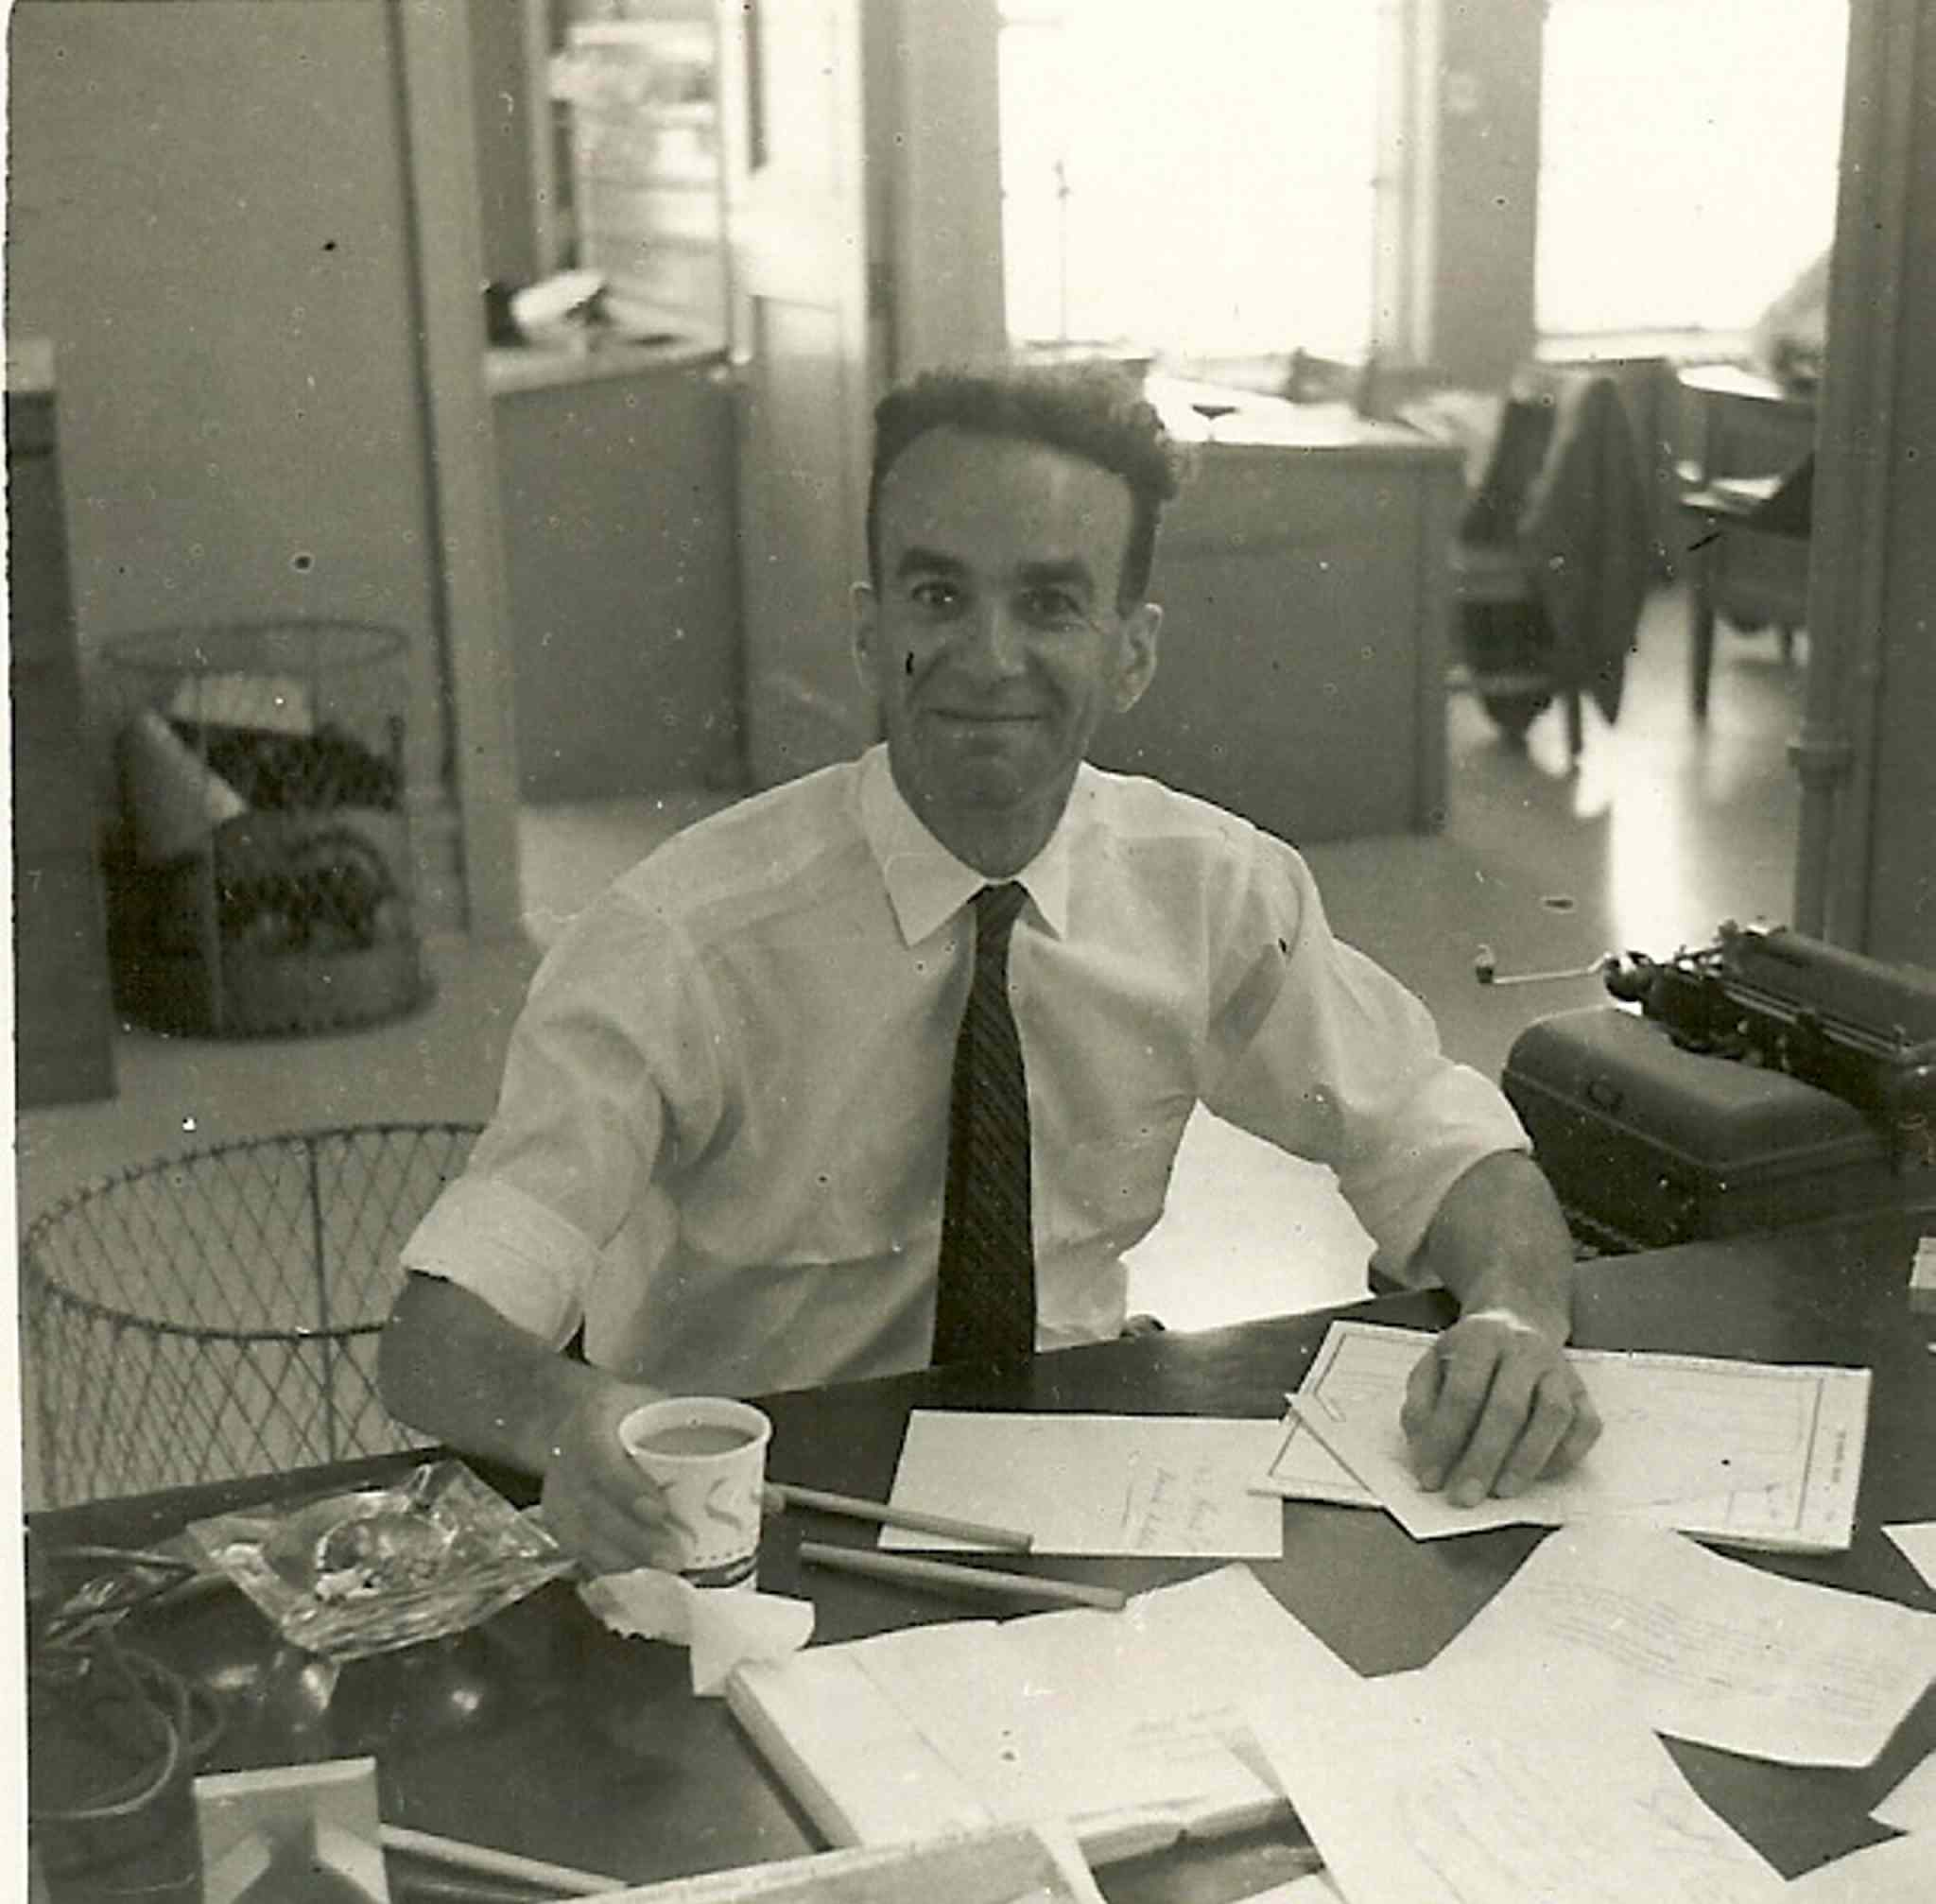 Val Werier does some newspapering in this undated photo.